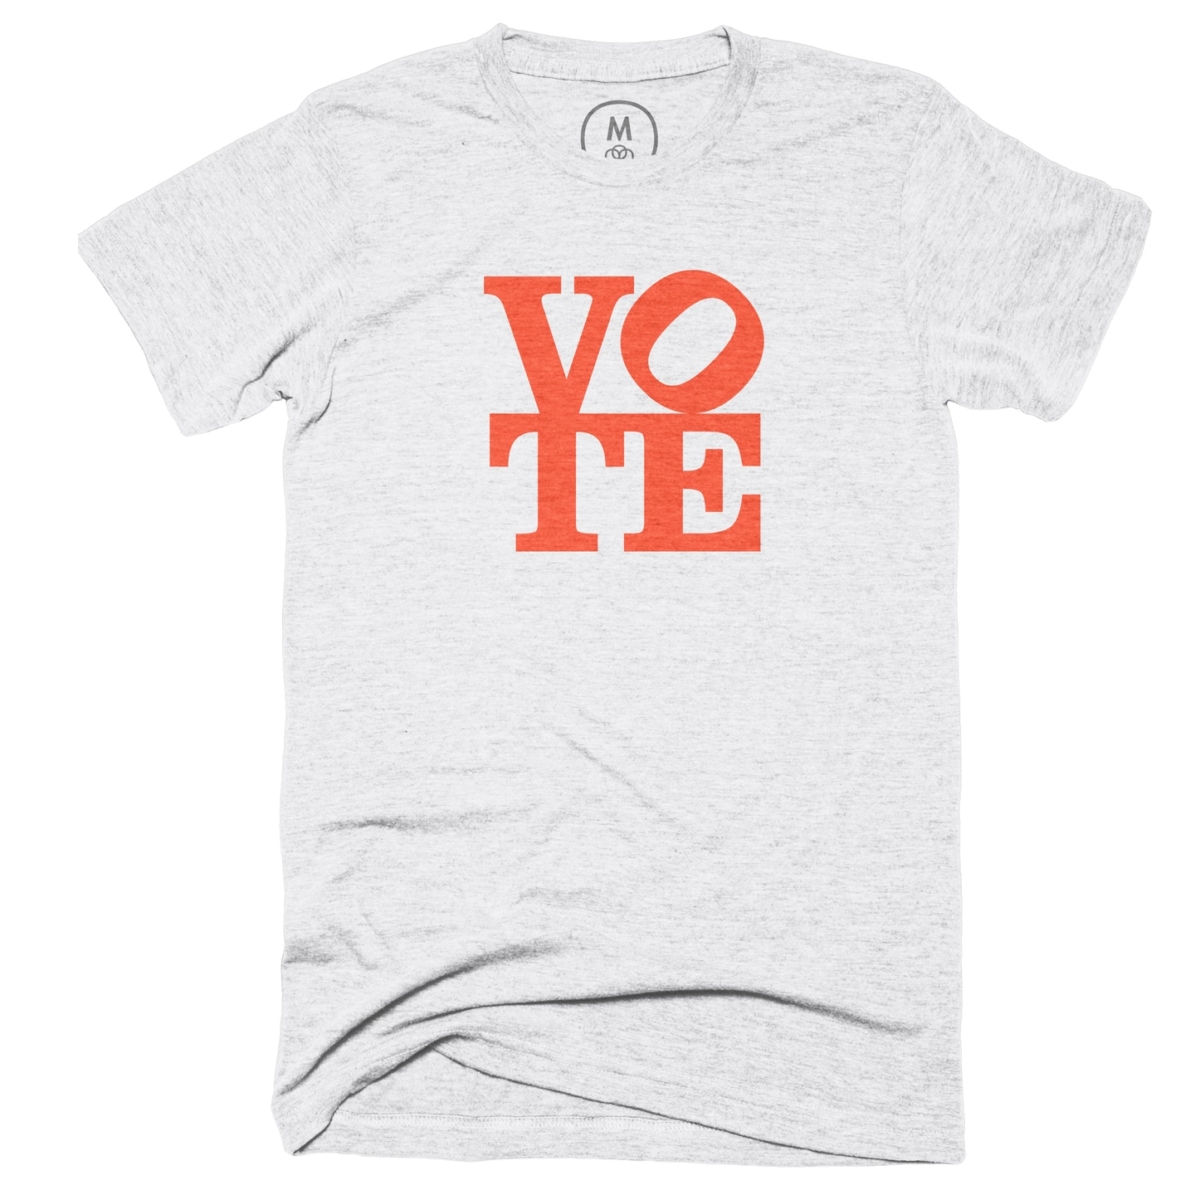 Vote shirt in the style of LOVE